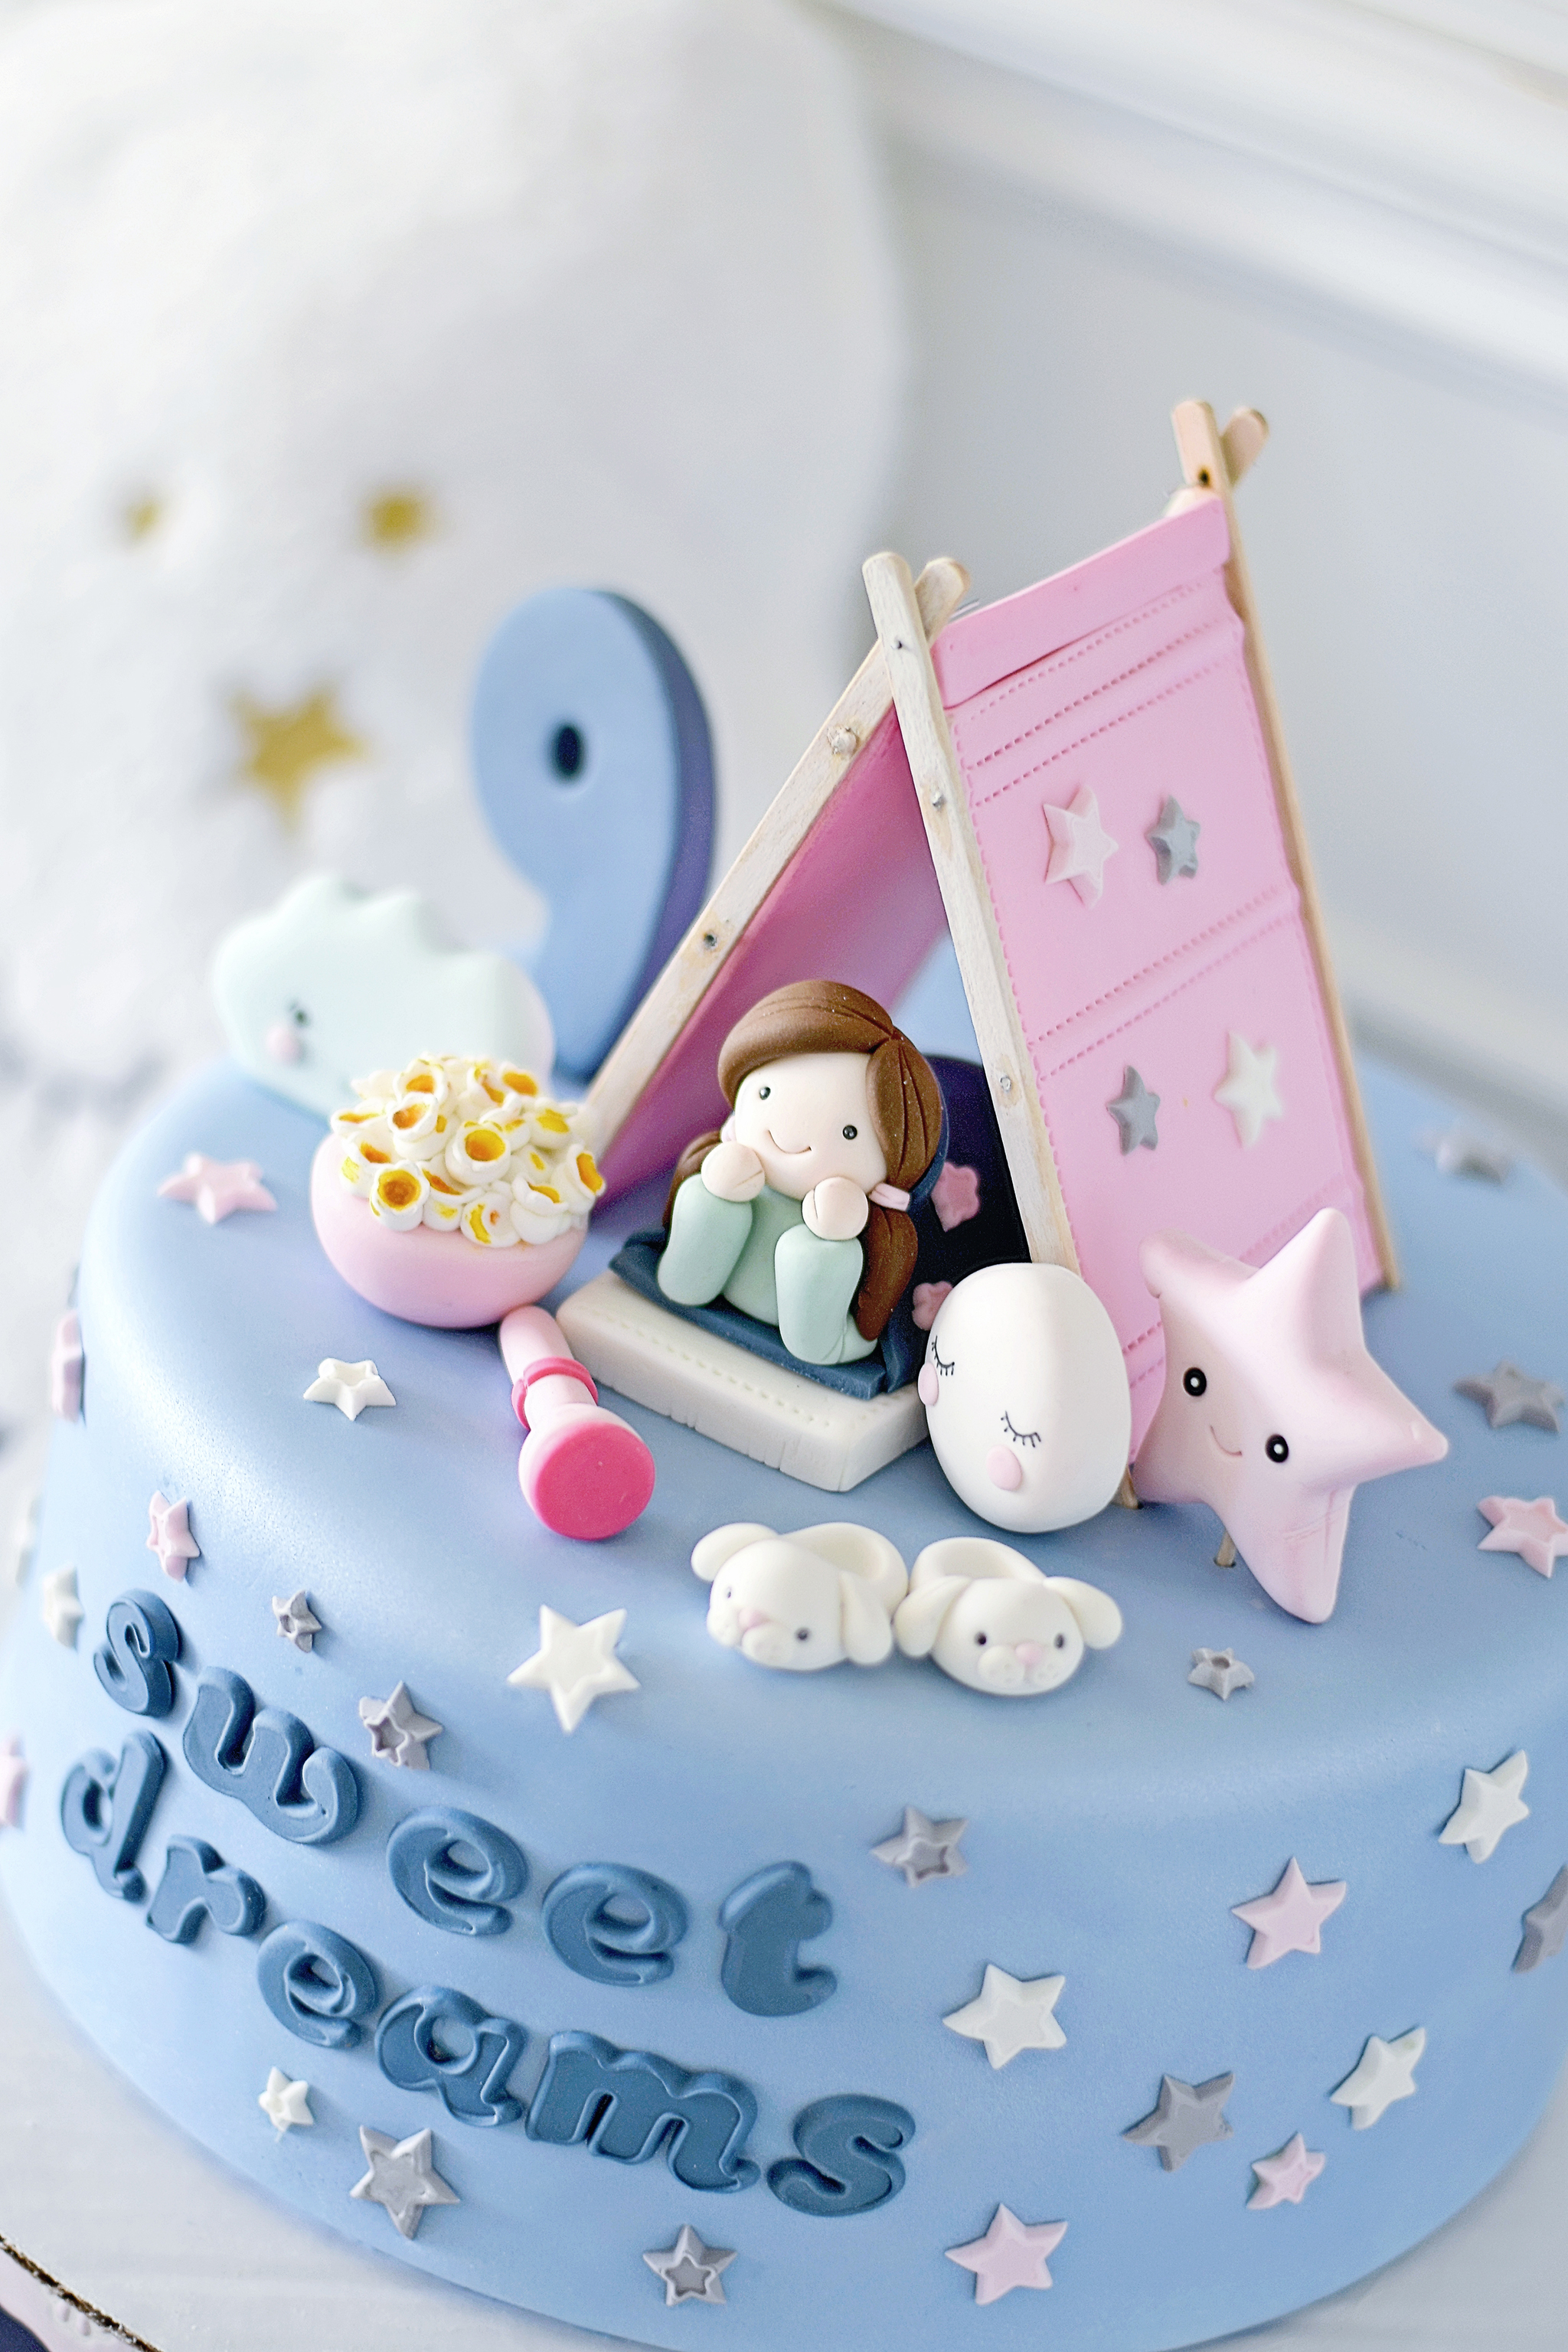 Sleepover Sleep-Under Sweet Dreams Cake by Les Pop Sweets